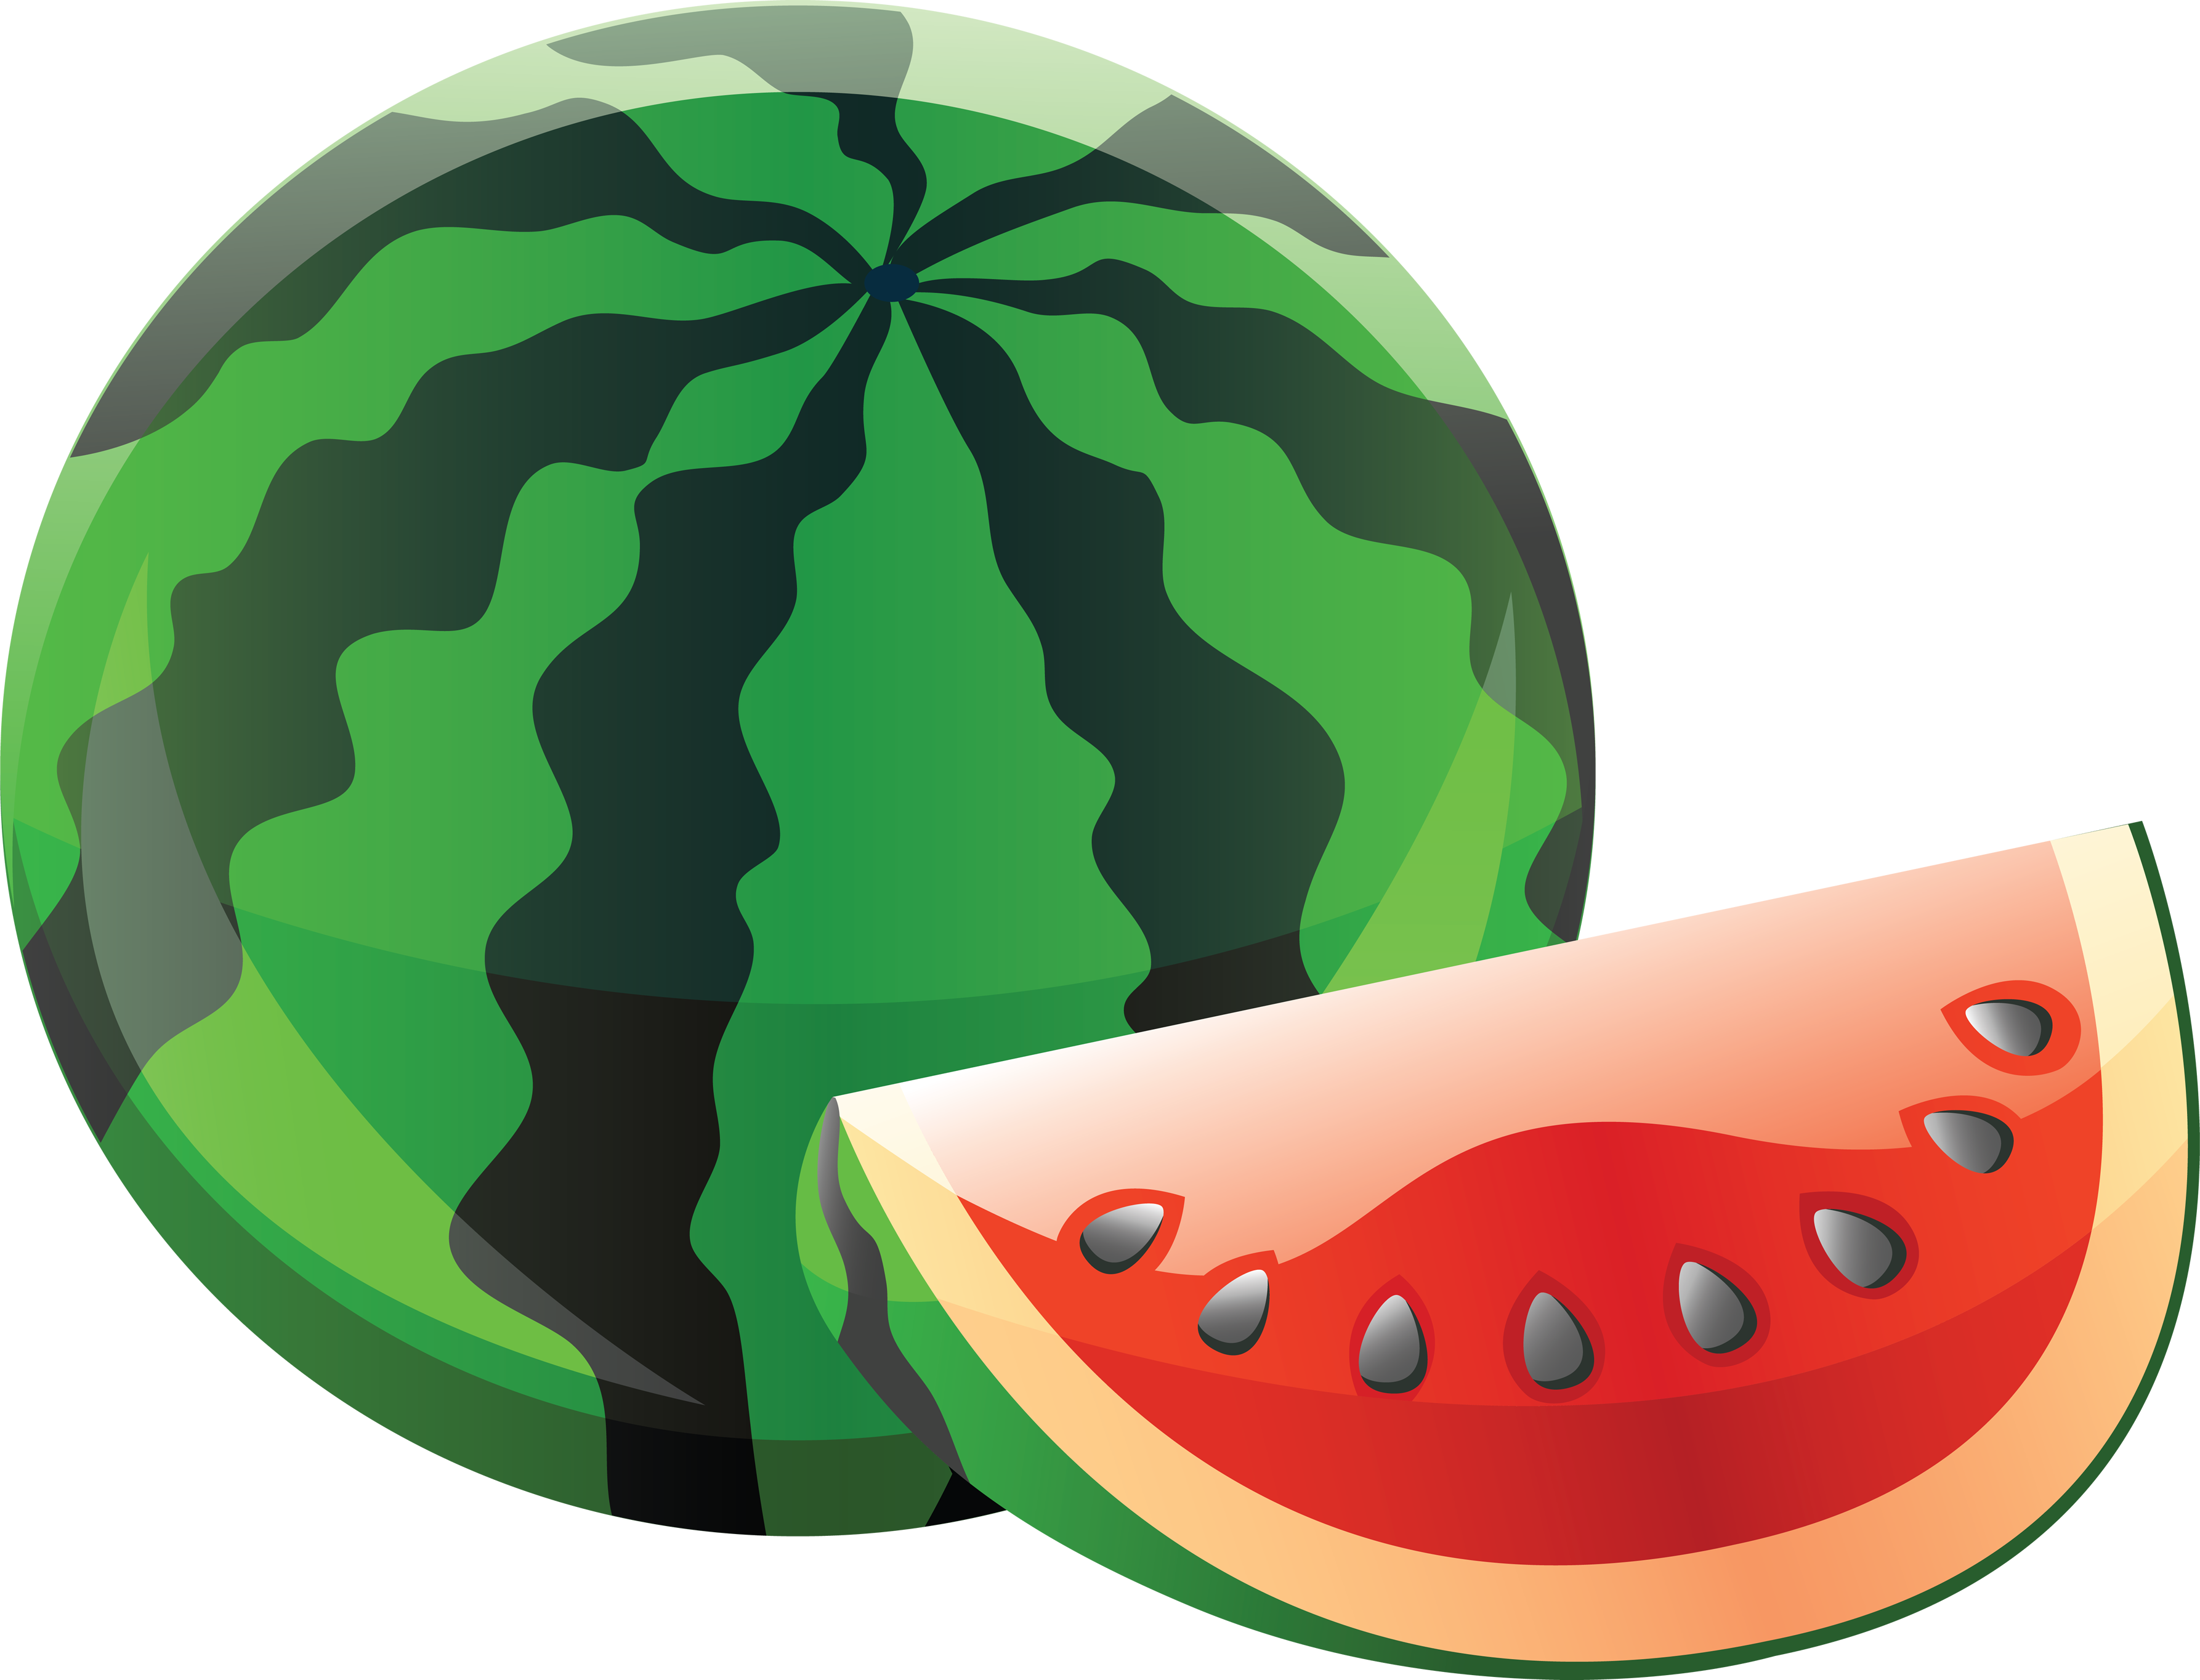 Pin by hopeless on. Watermelon clipart skin